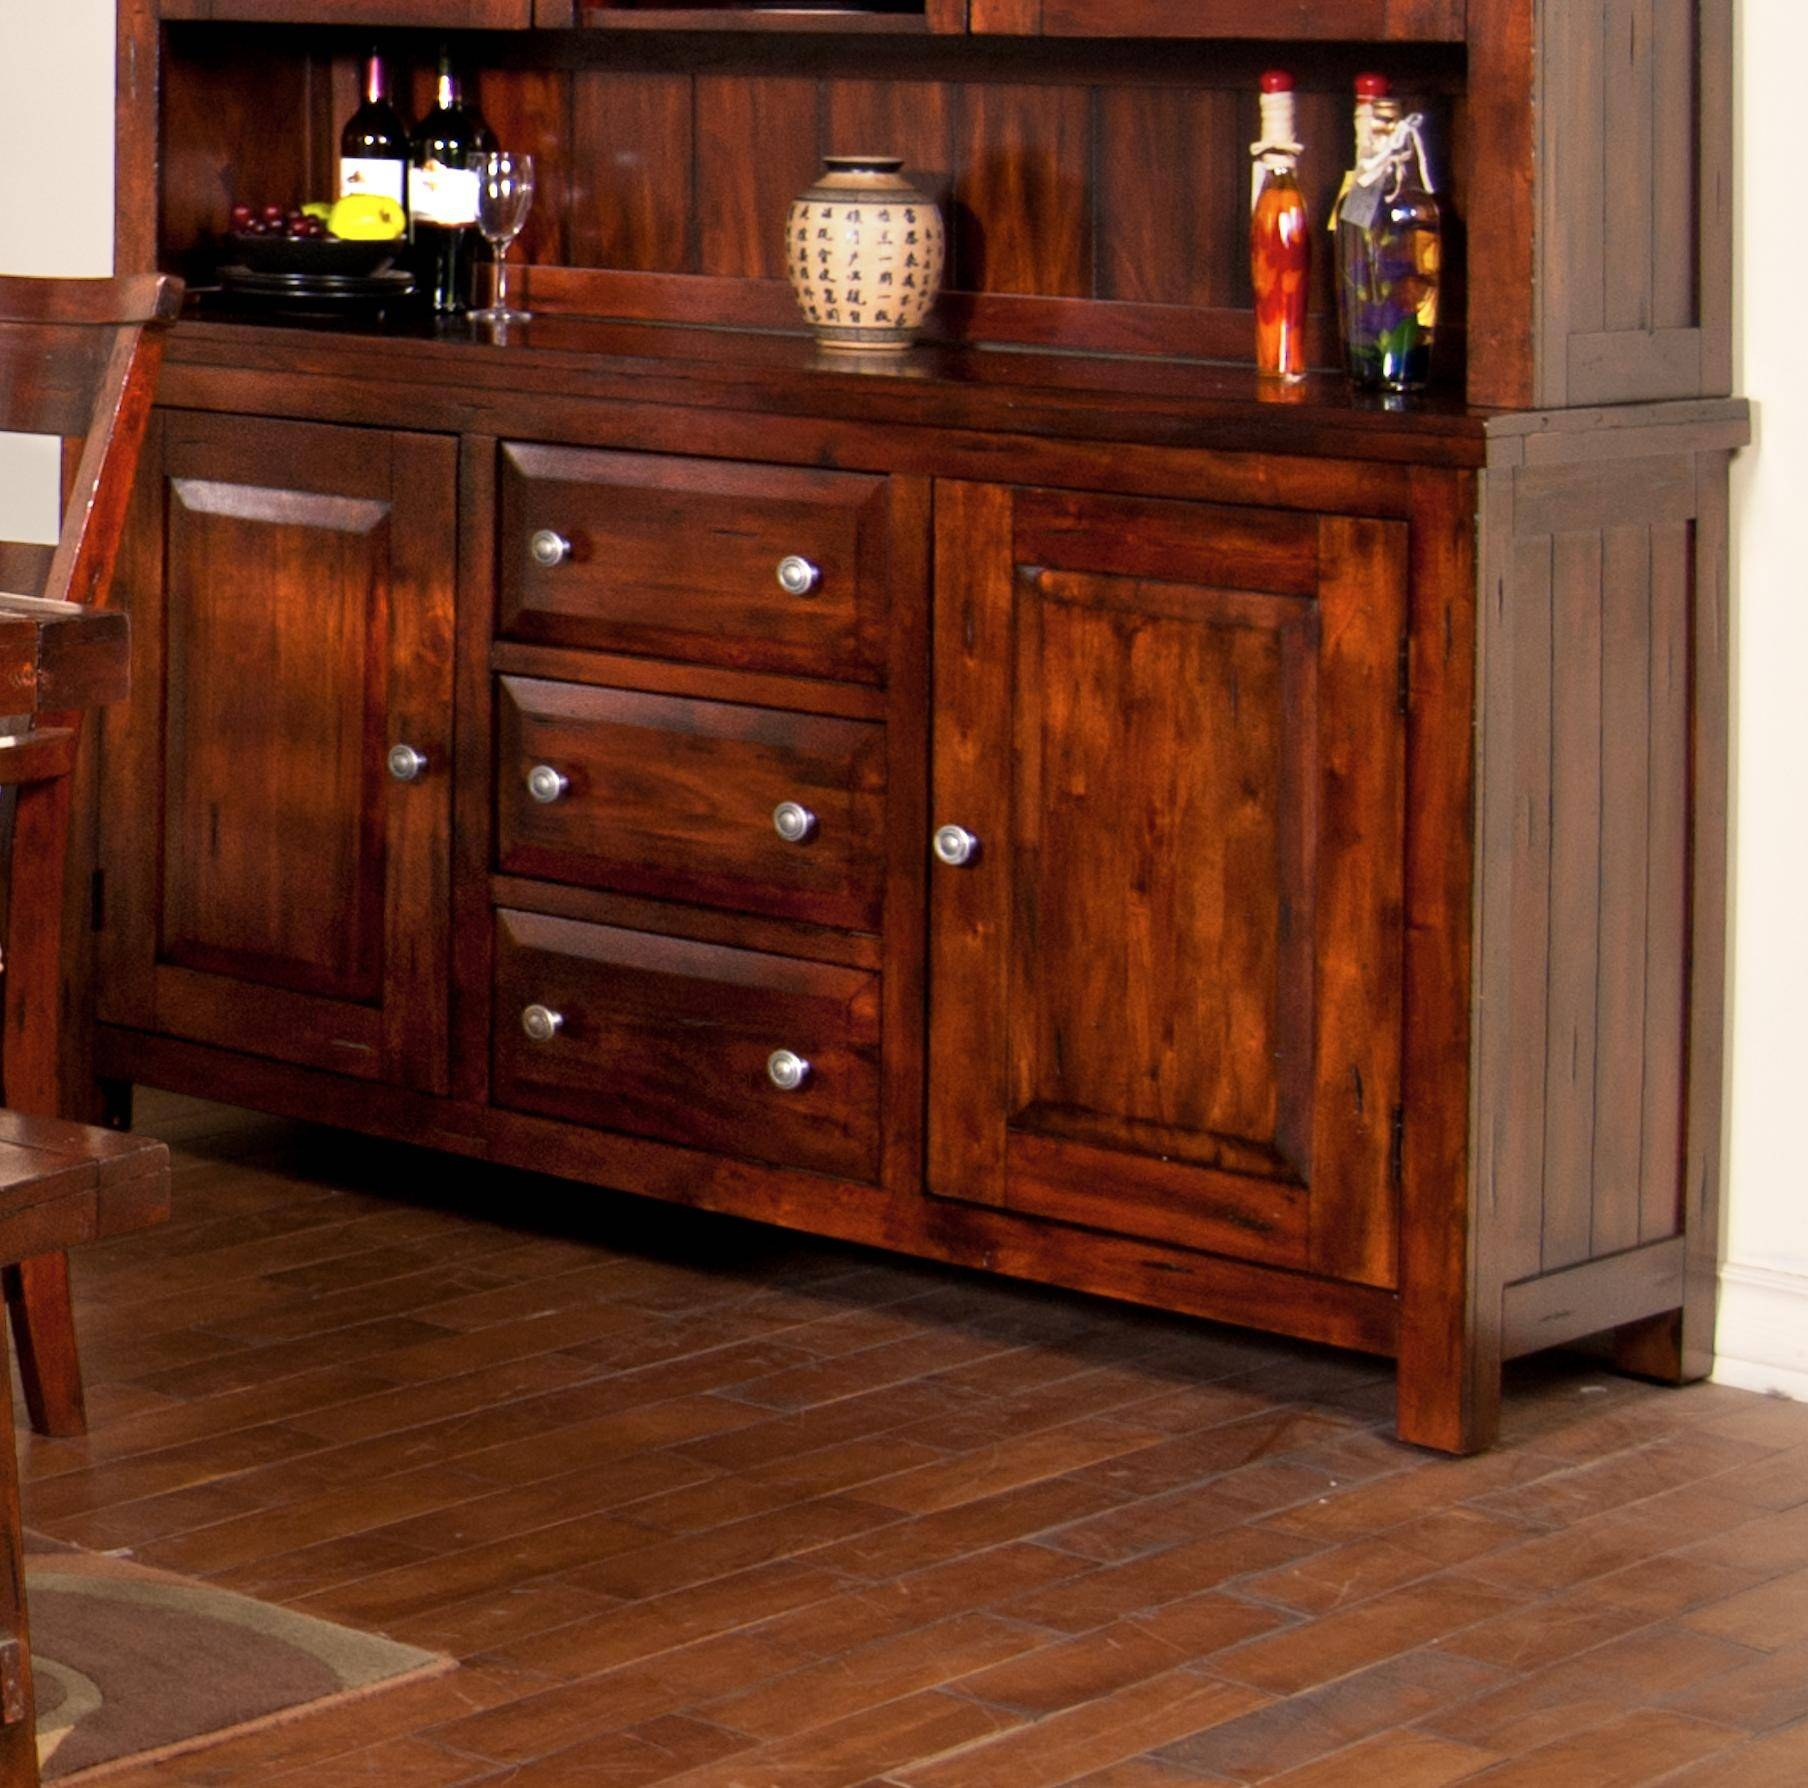 Sideboards. Astounding Narrow Sideboards And Buffets: Narrow with Narrow Sideboards (Image 21 of 30)